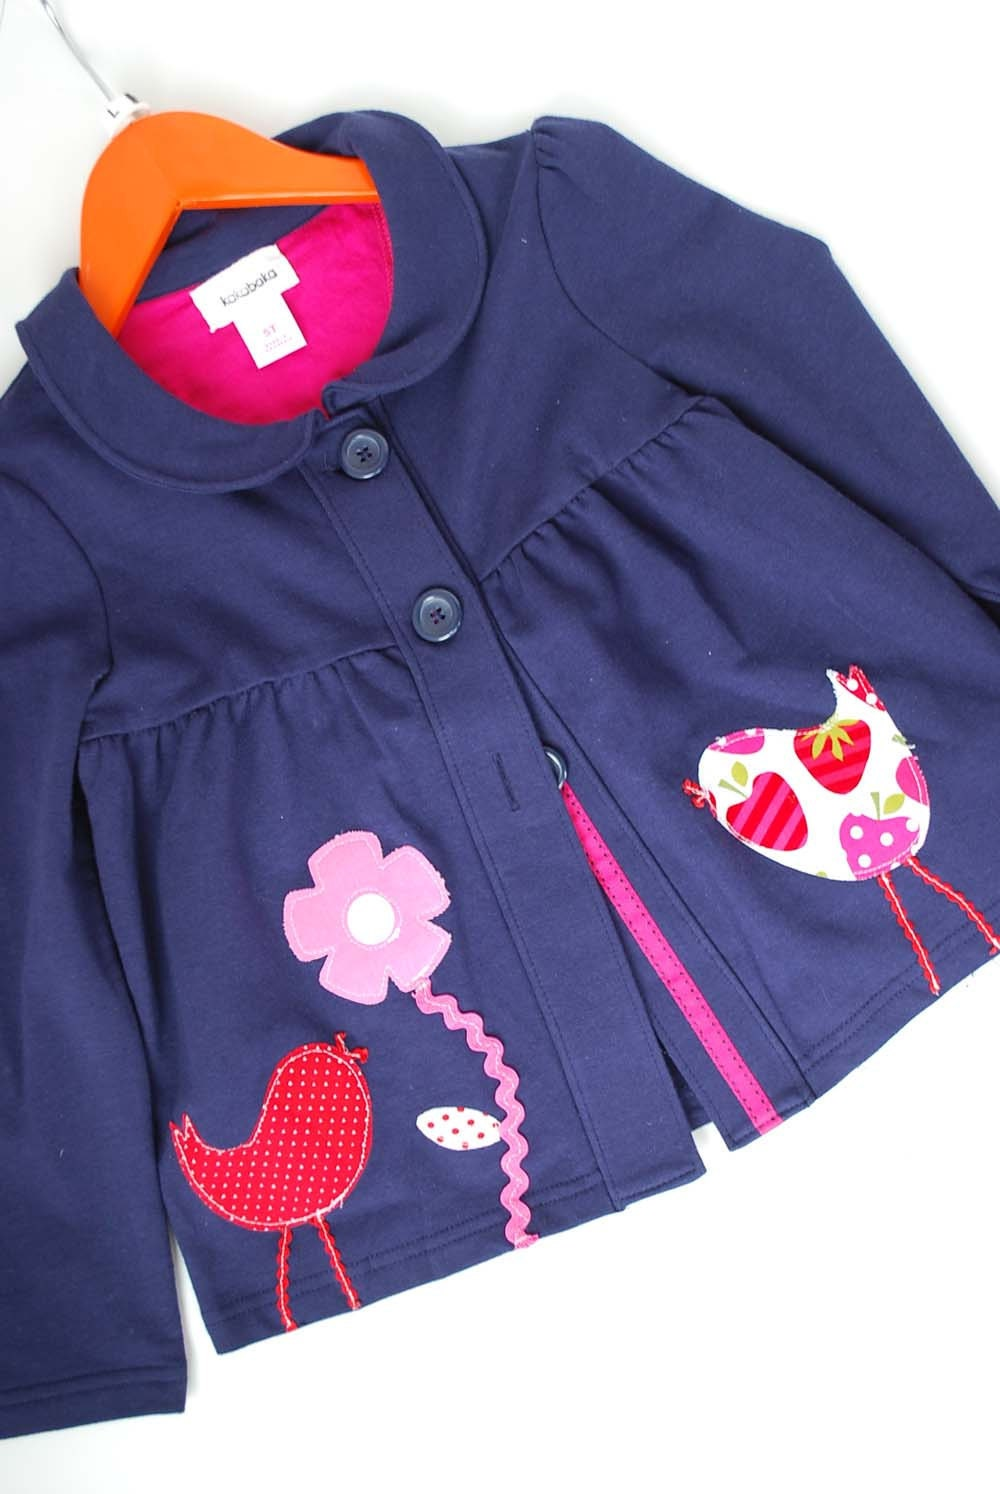 Spring Navy Blue Jacket 5T with Bird and Flower Applique